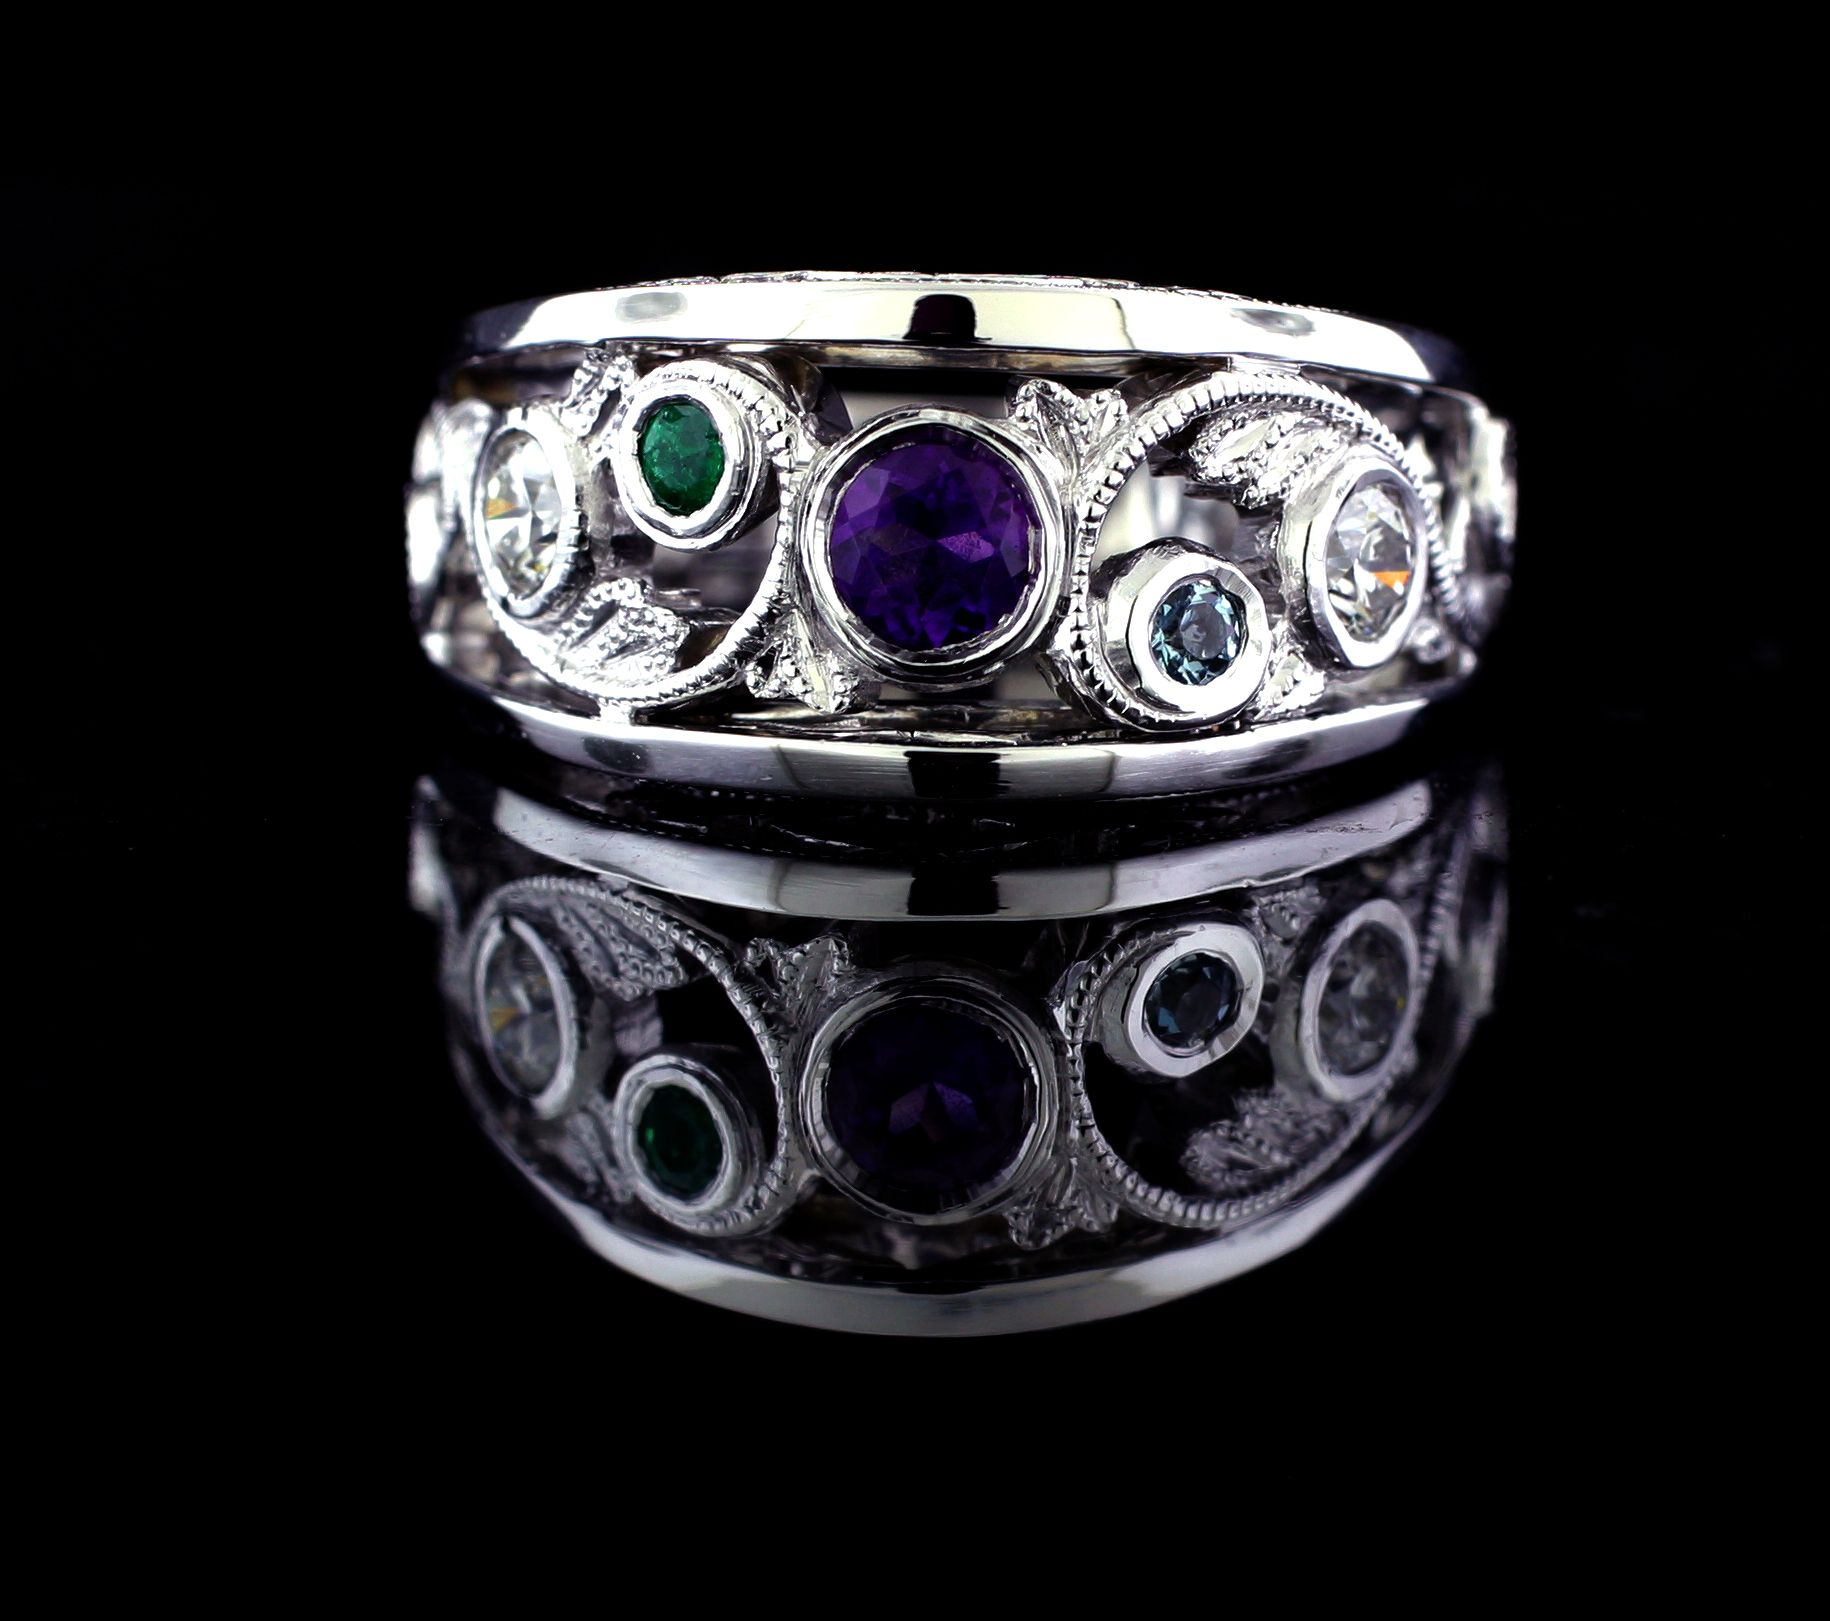 Hand made custom fabricated mothers ring with amethyst